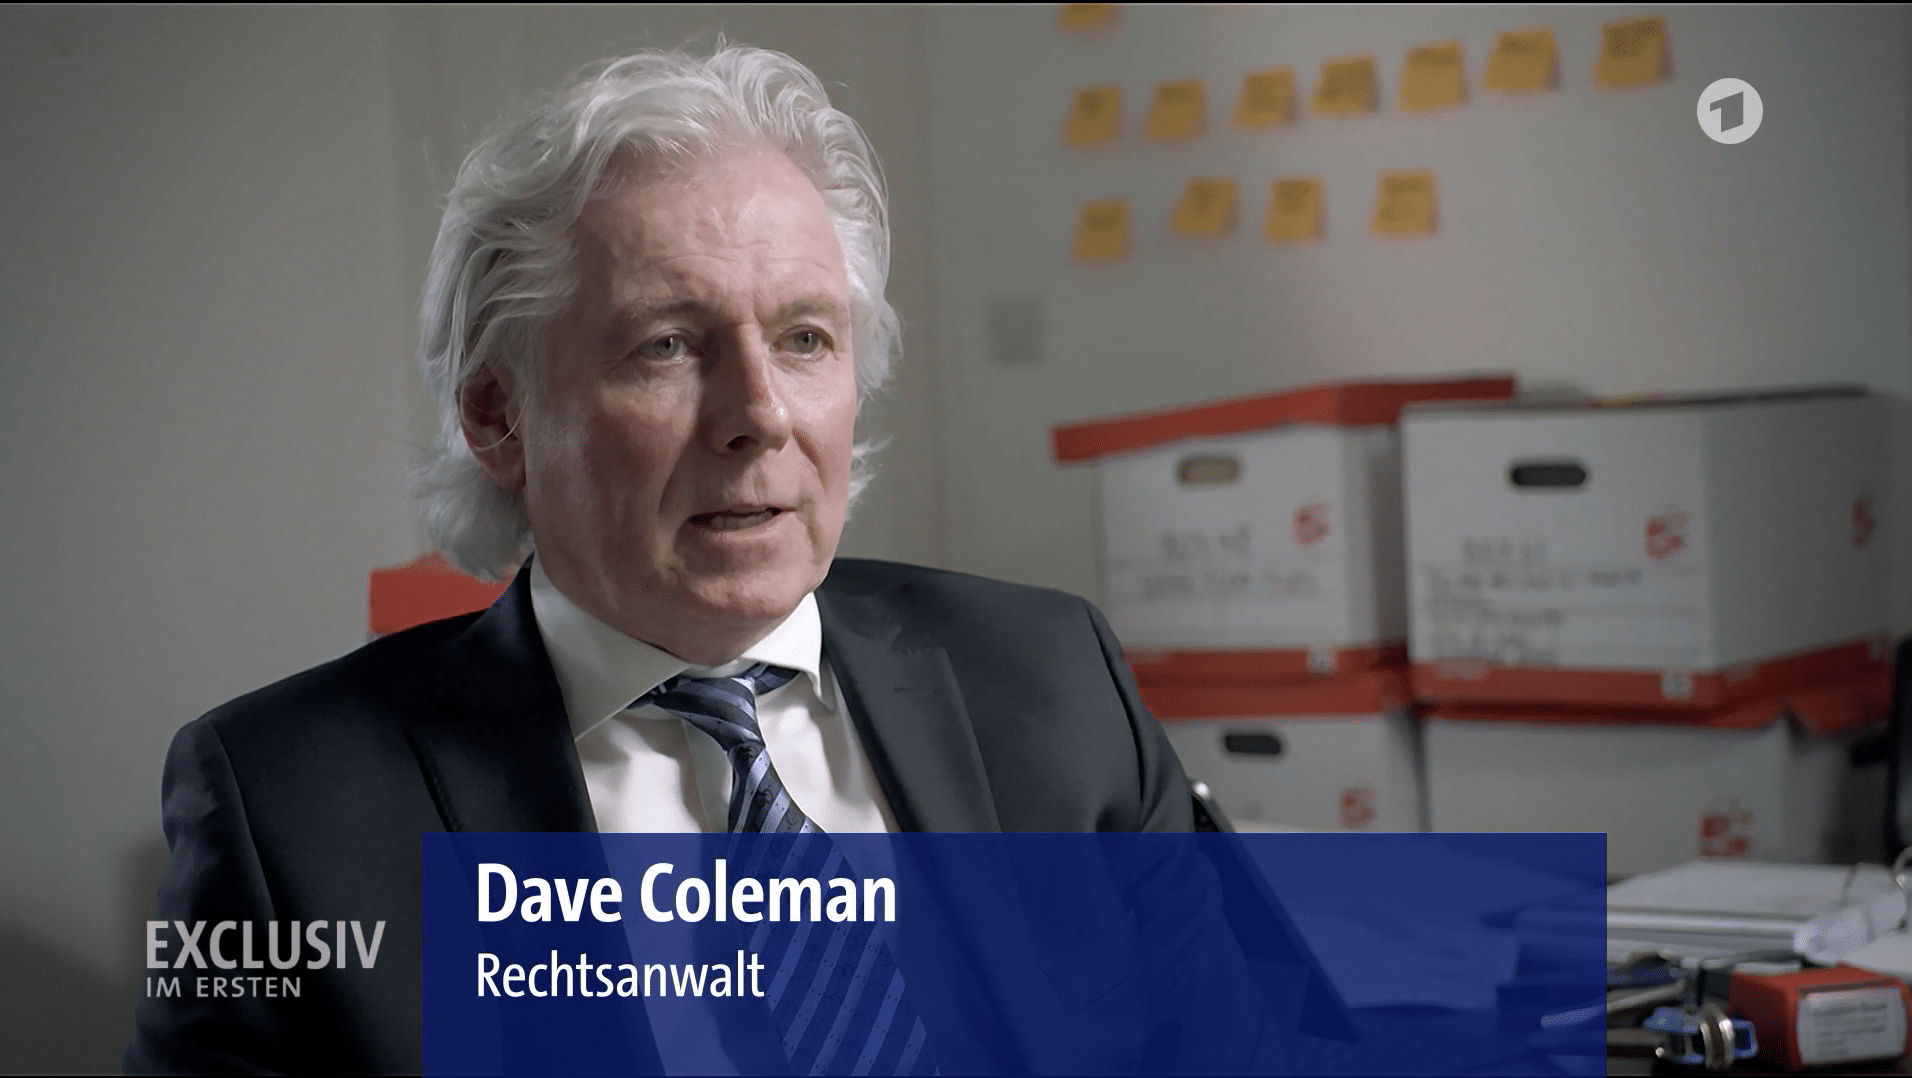 Dave Coleman on Dolphin Trust Insolvency with German News Channel BR 24